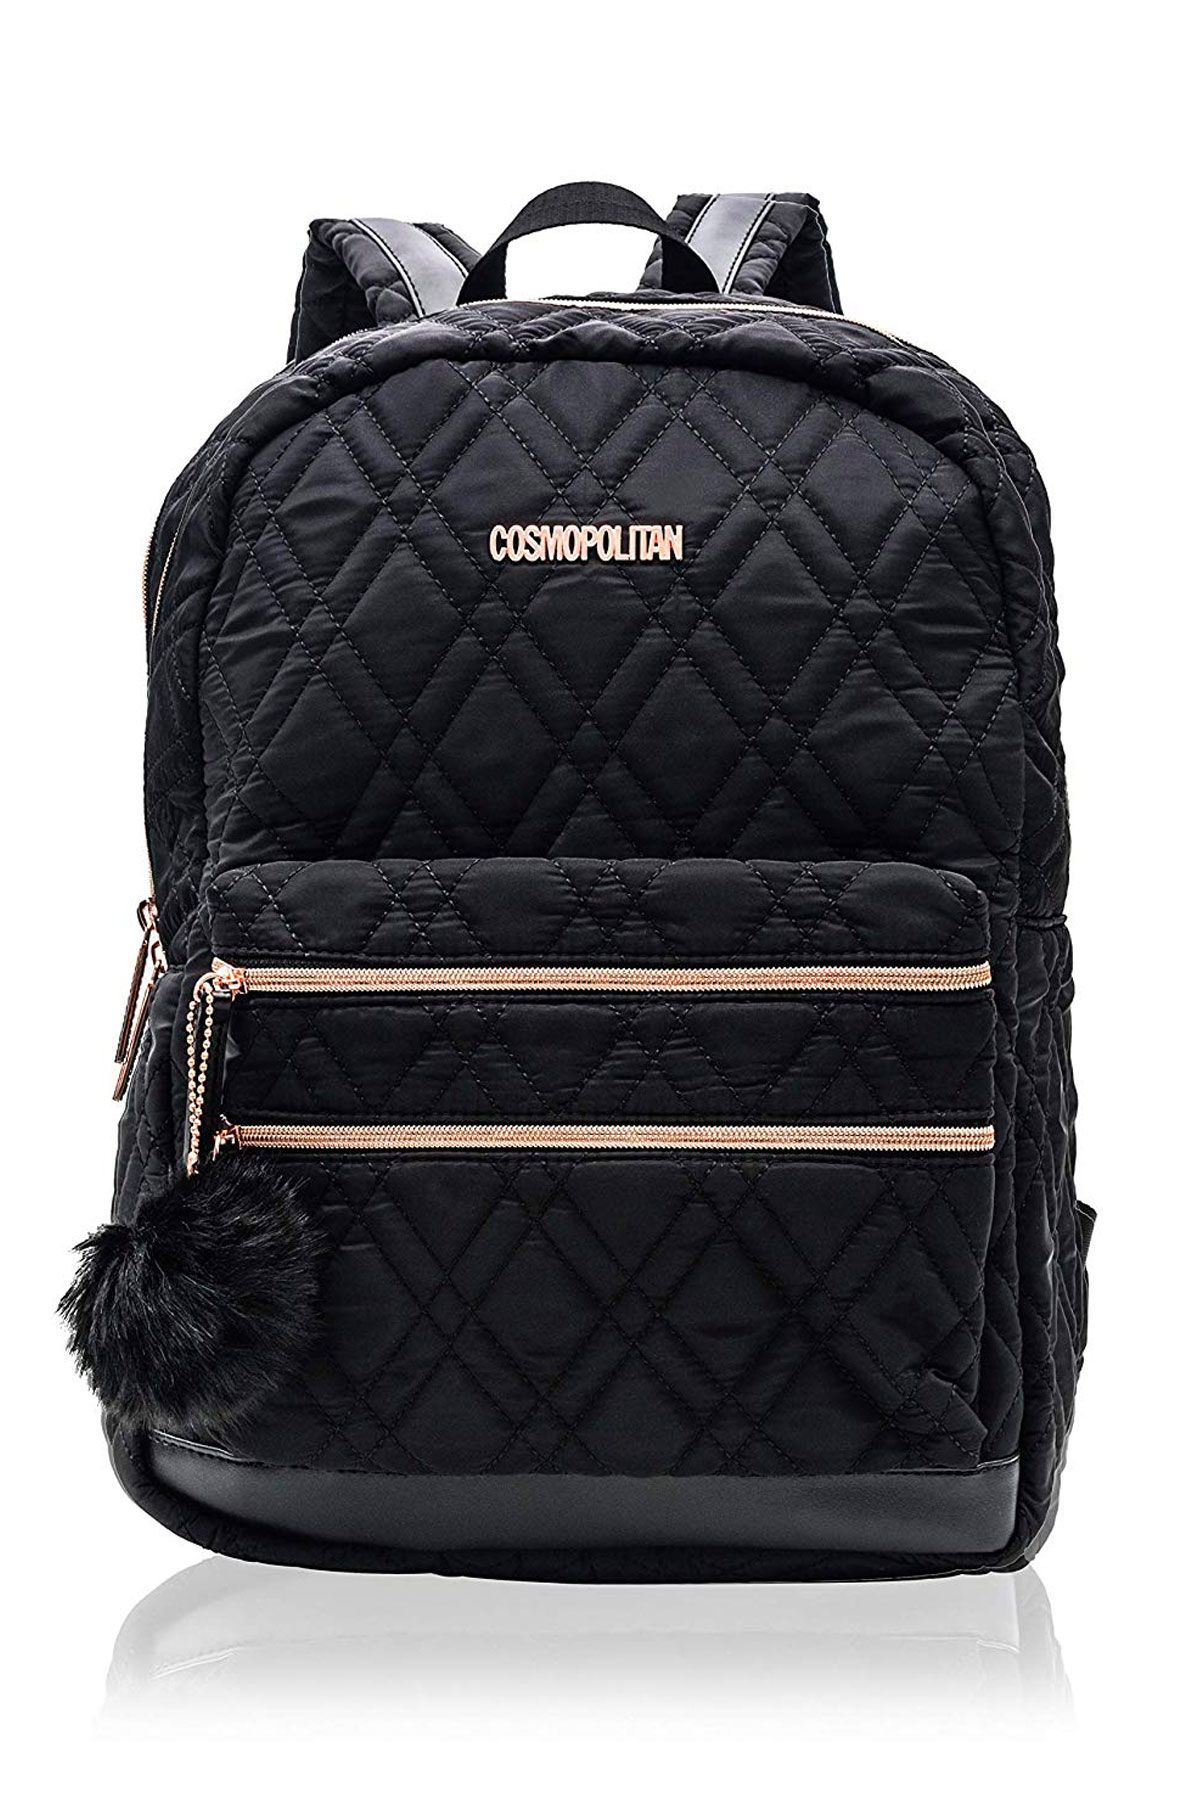 0923b20716 Women's Quilted Travel Backpack with Rose Gold Hardwear